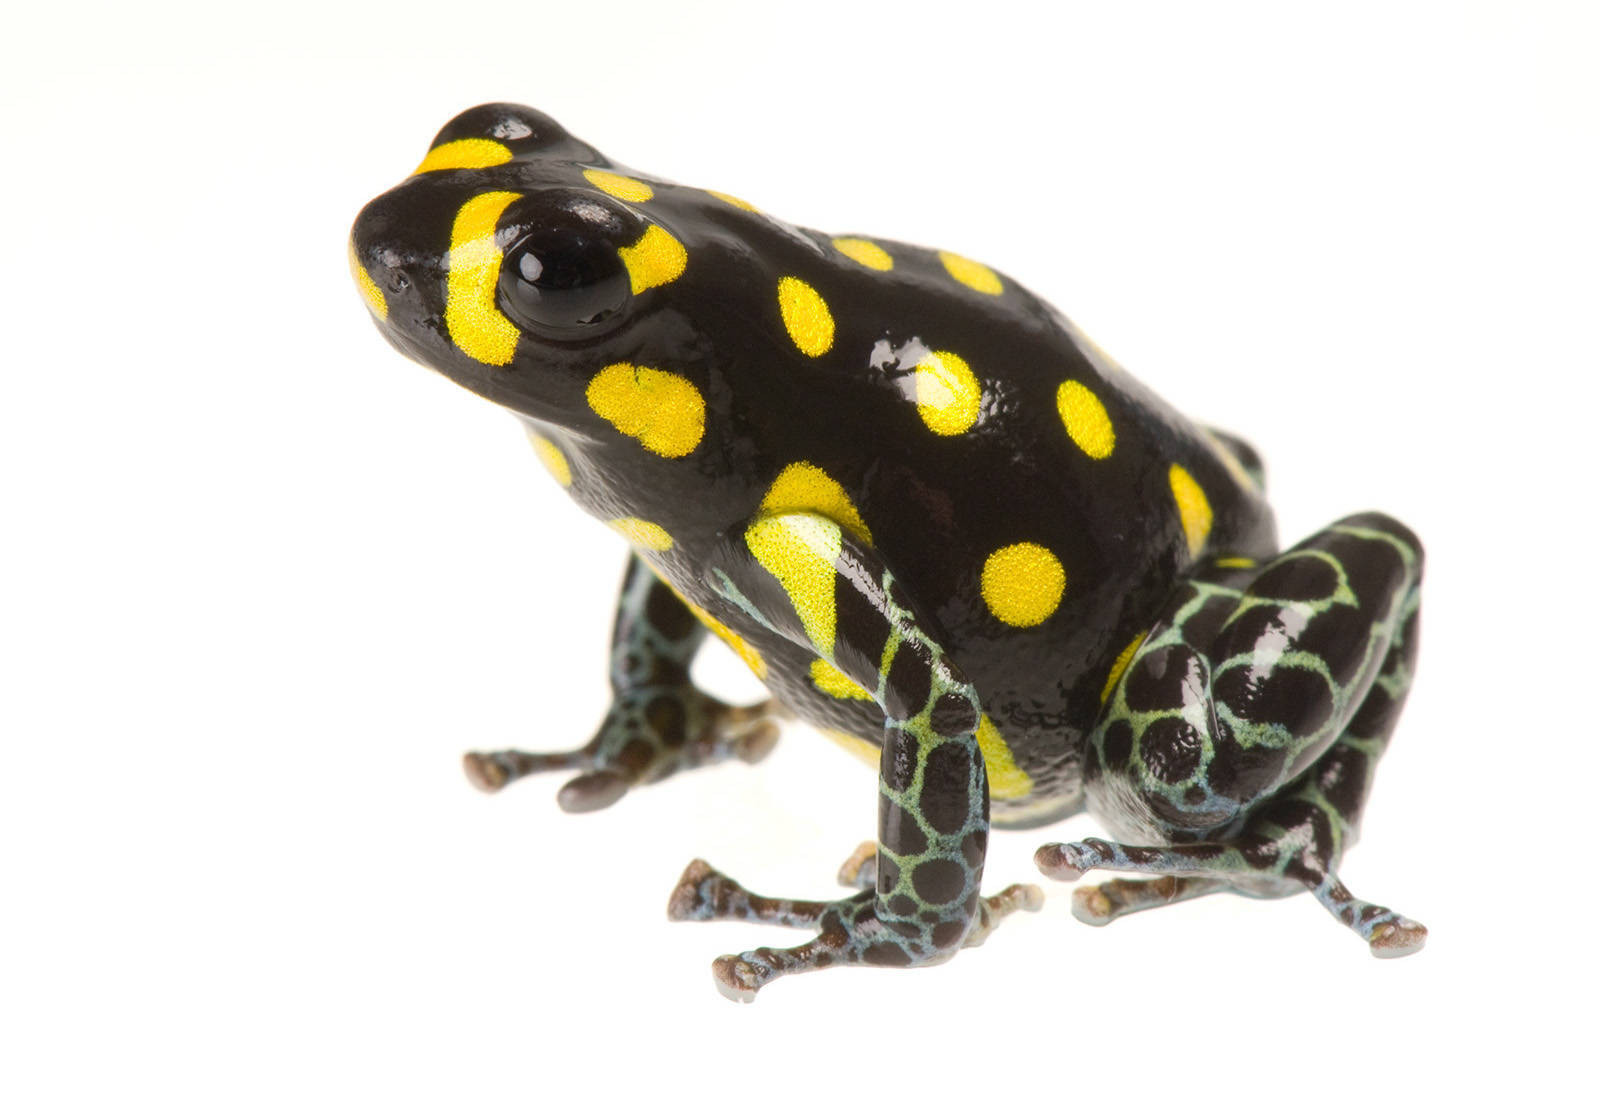 Photo: Brazil poison frog (Ranitomeya vanzolinii) from a private collection.